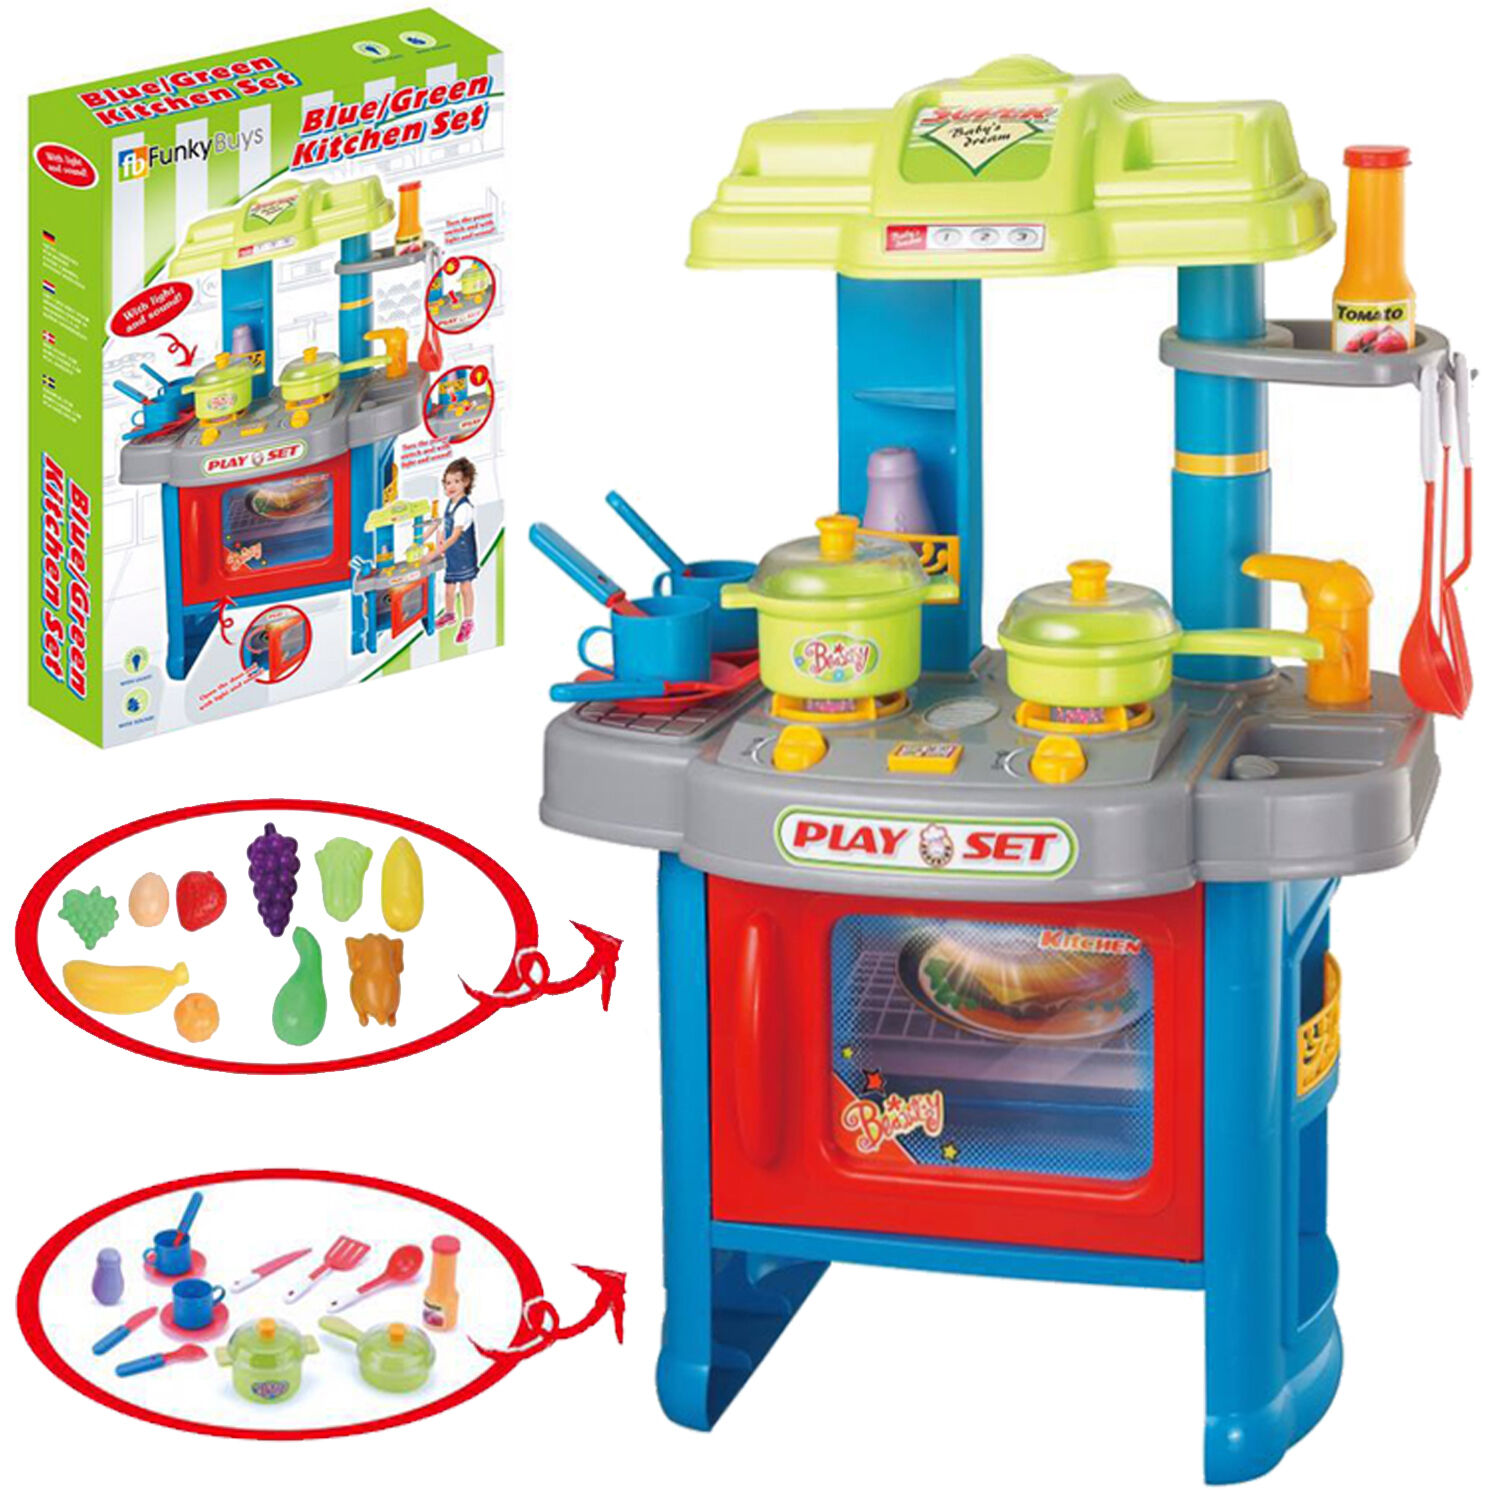 Electronic Kitchen Set: Portable Electronic Children Kids Kitchen Cooking Girl Toy